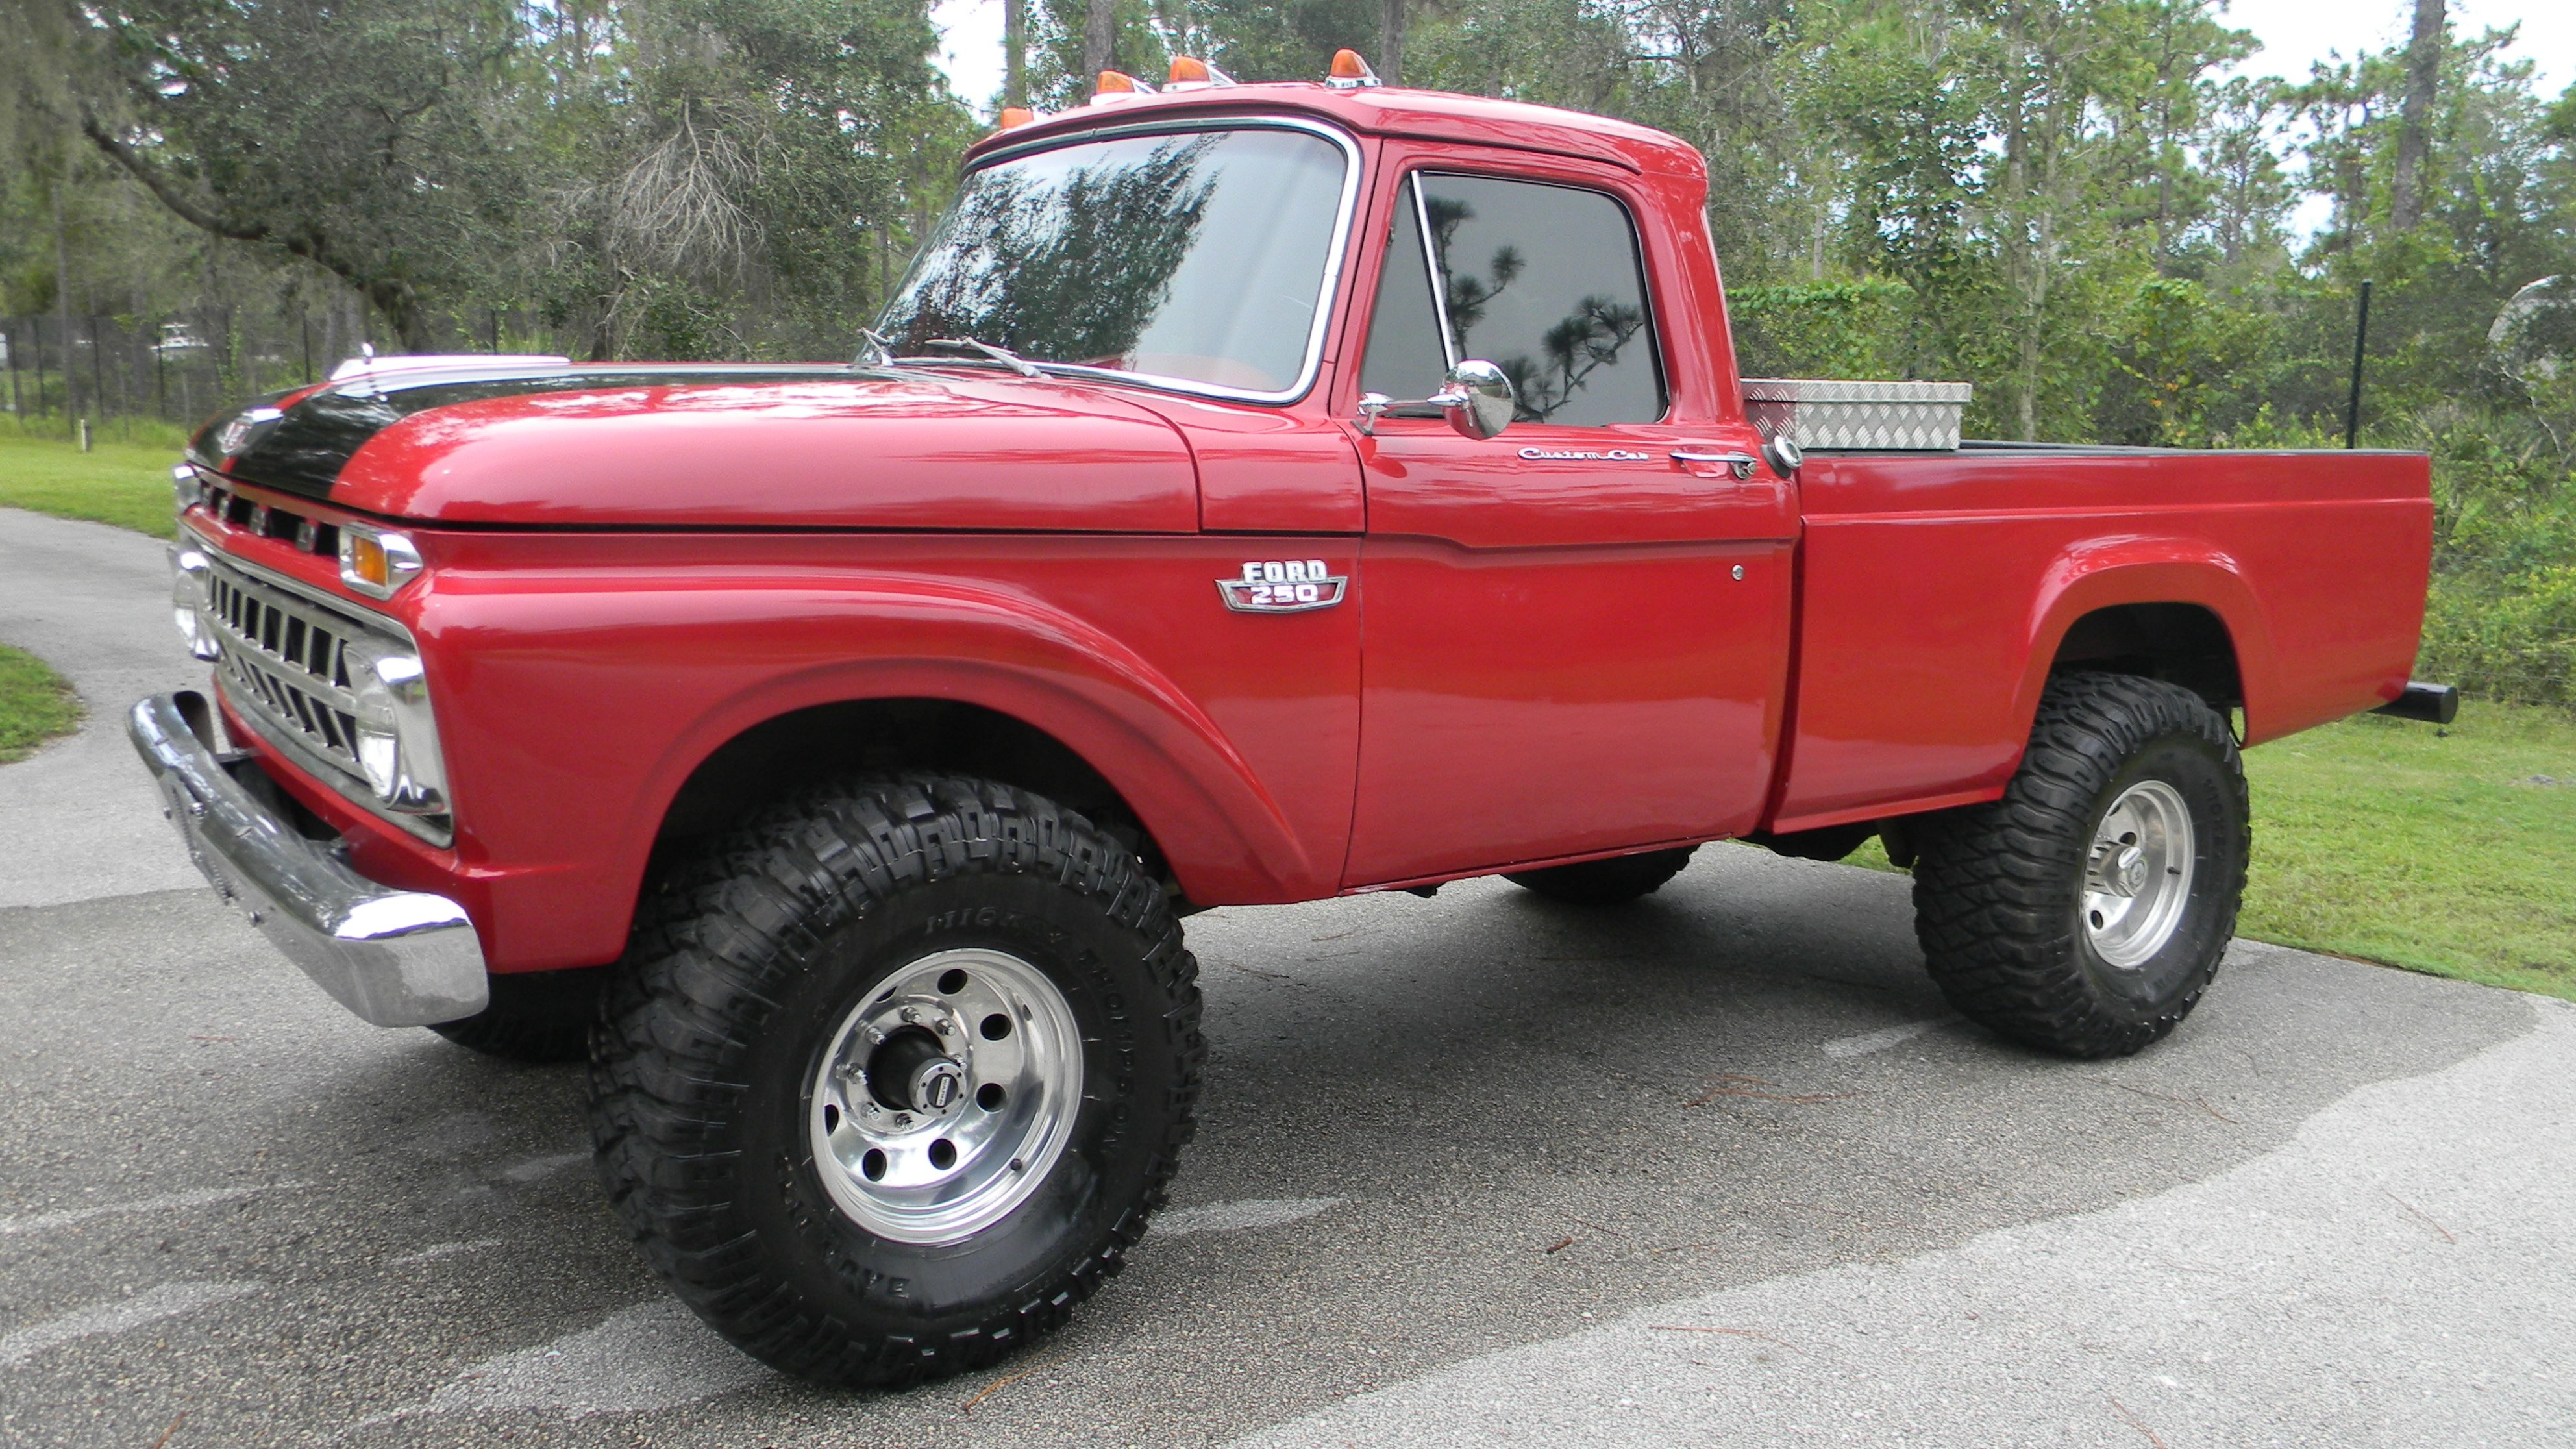 Ford F250 Classics For Sale On Autotrader 1955 F100 Heater Parts